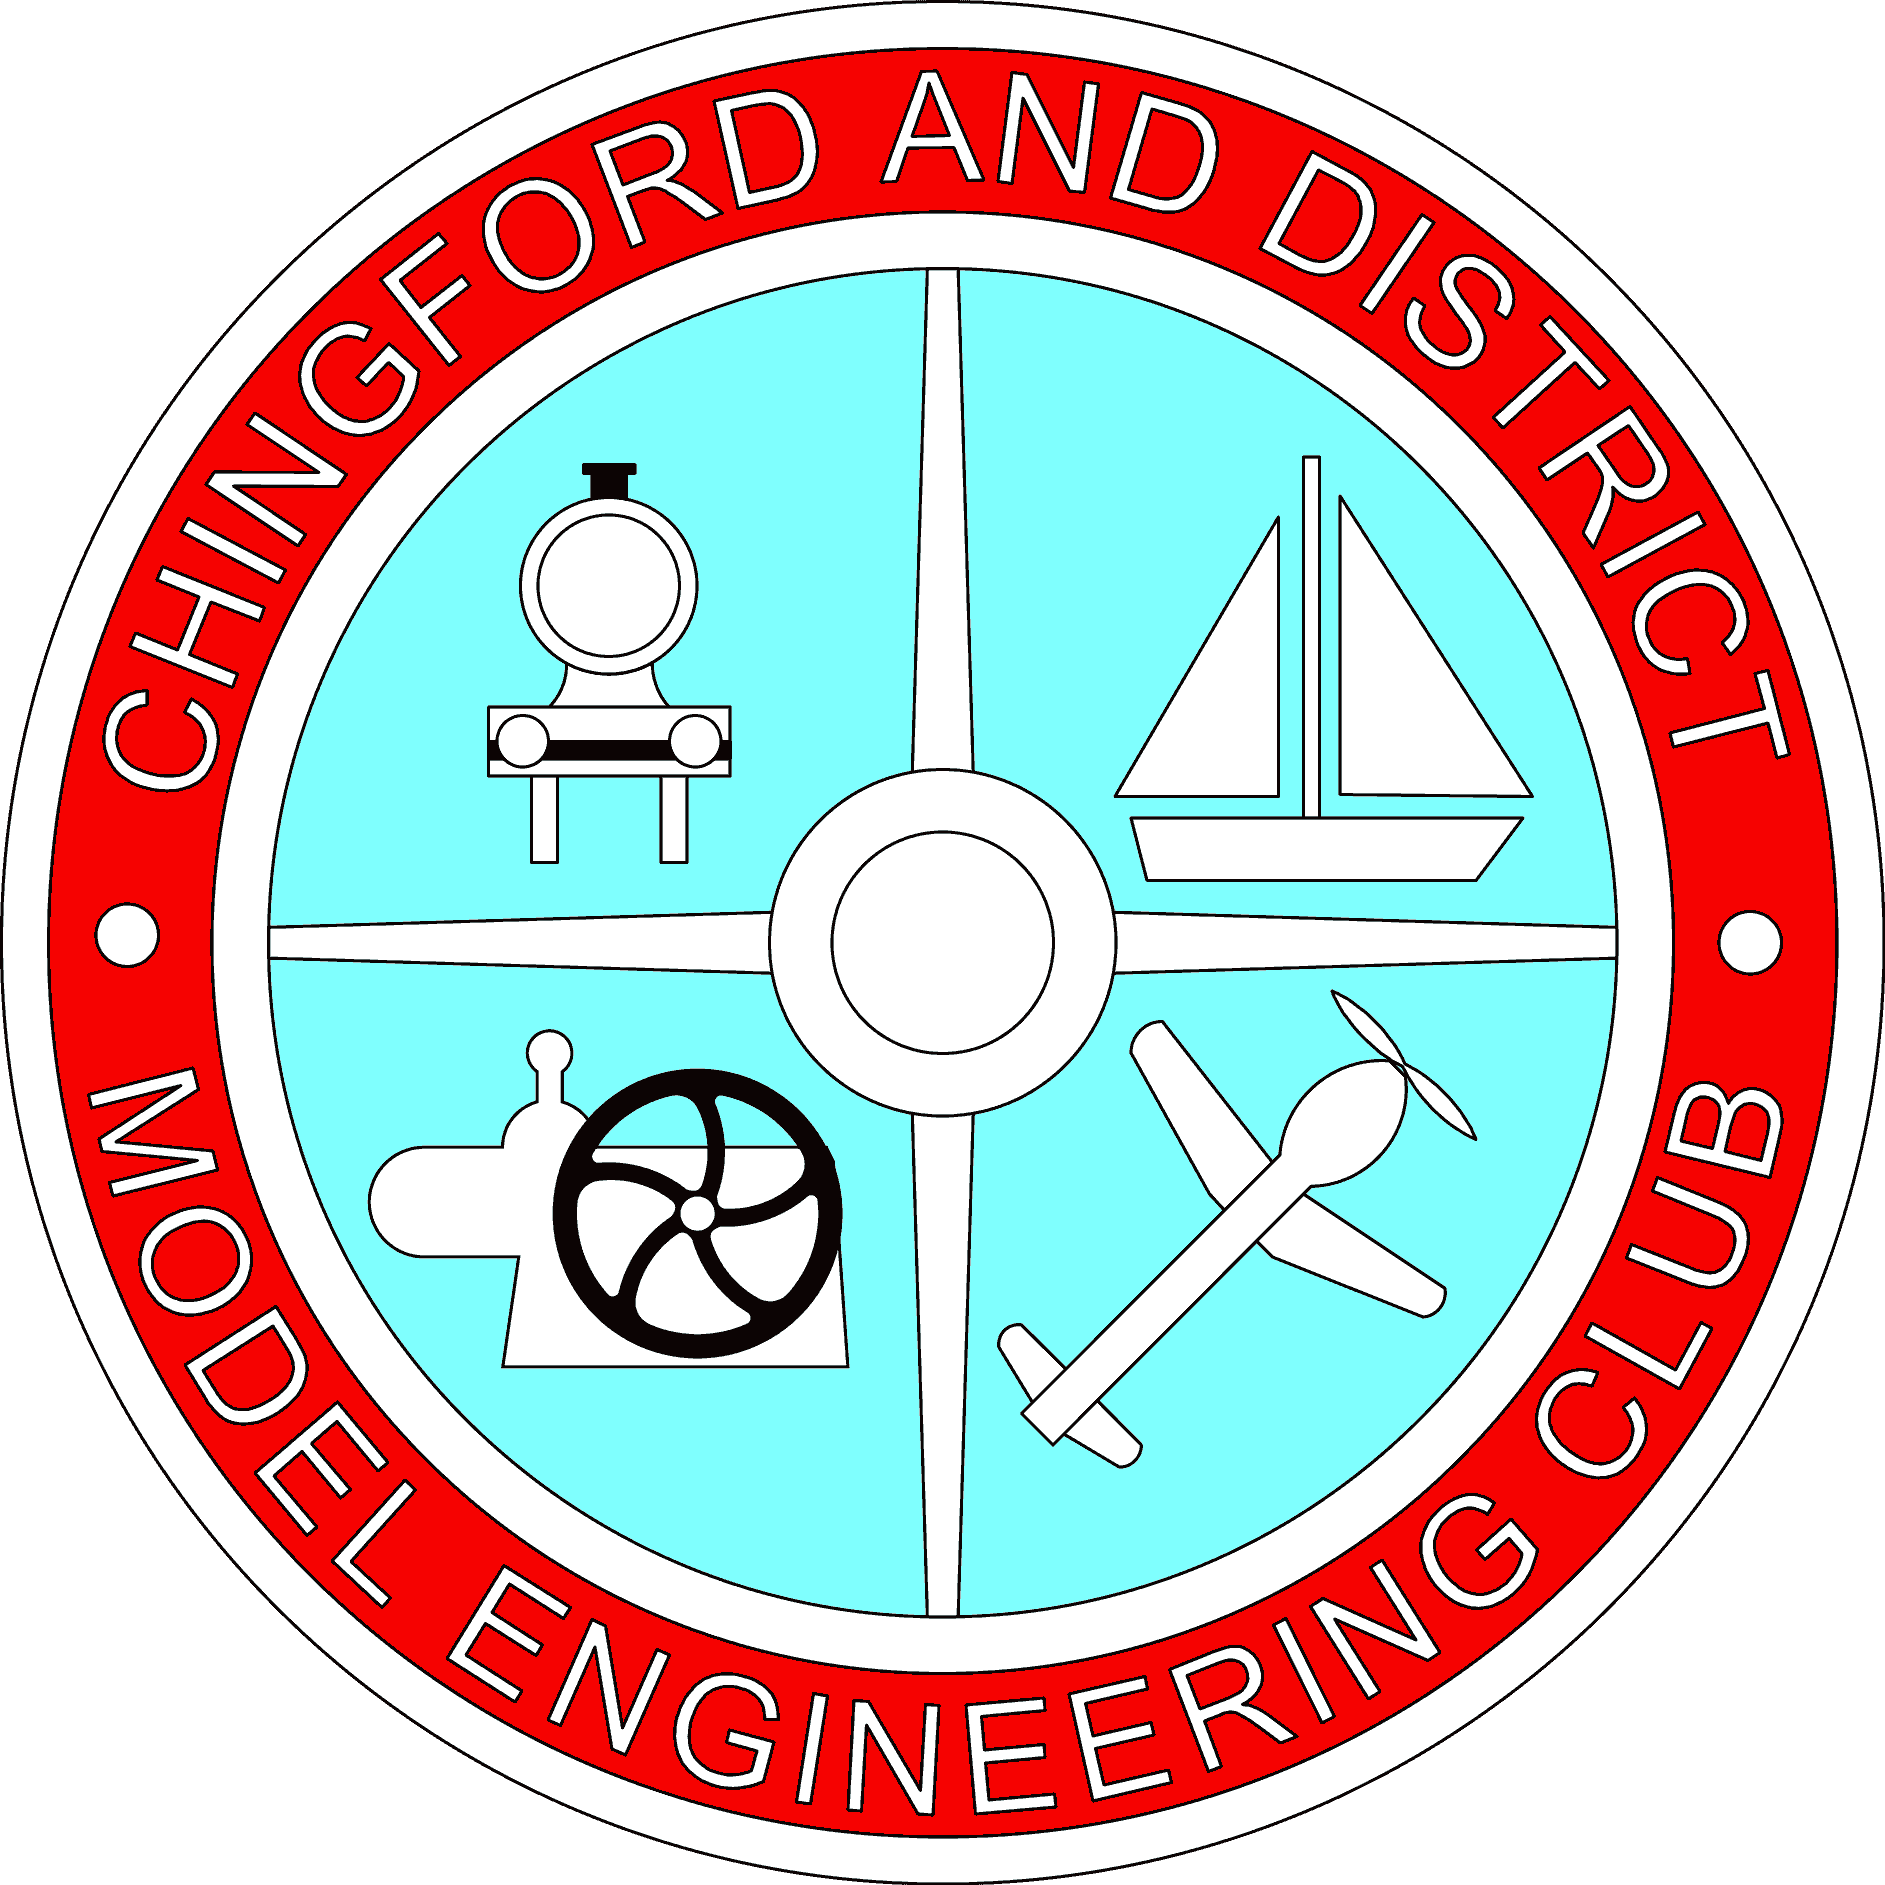 Chingford & District Model Engineering Club